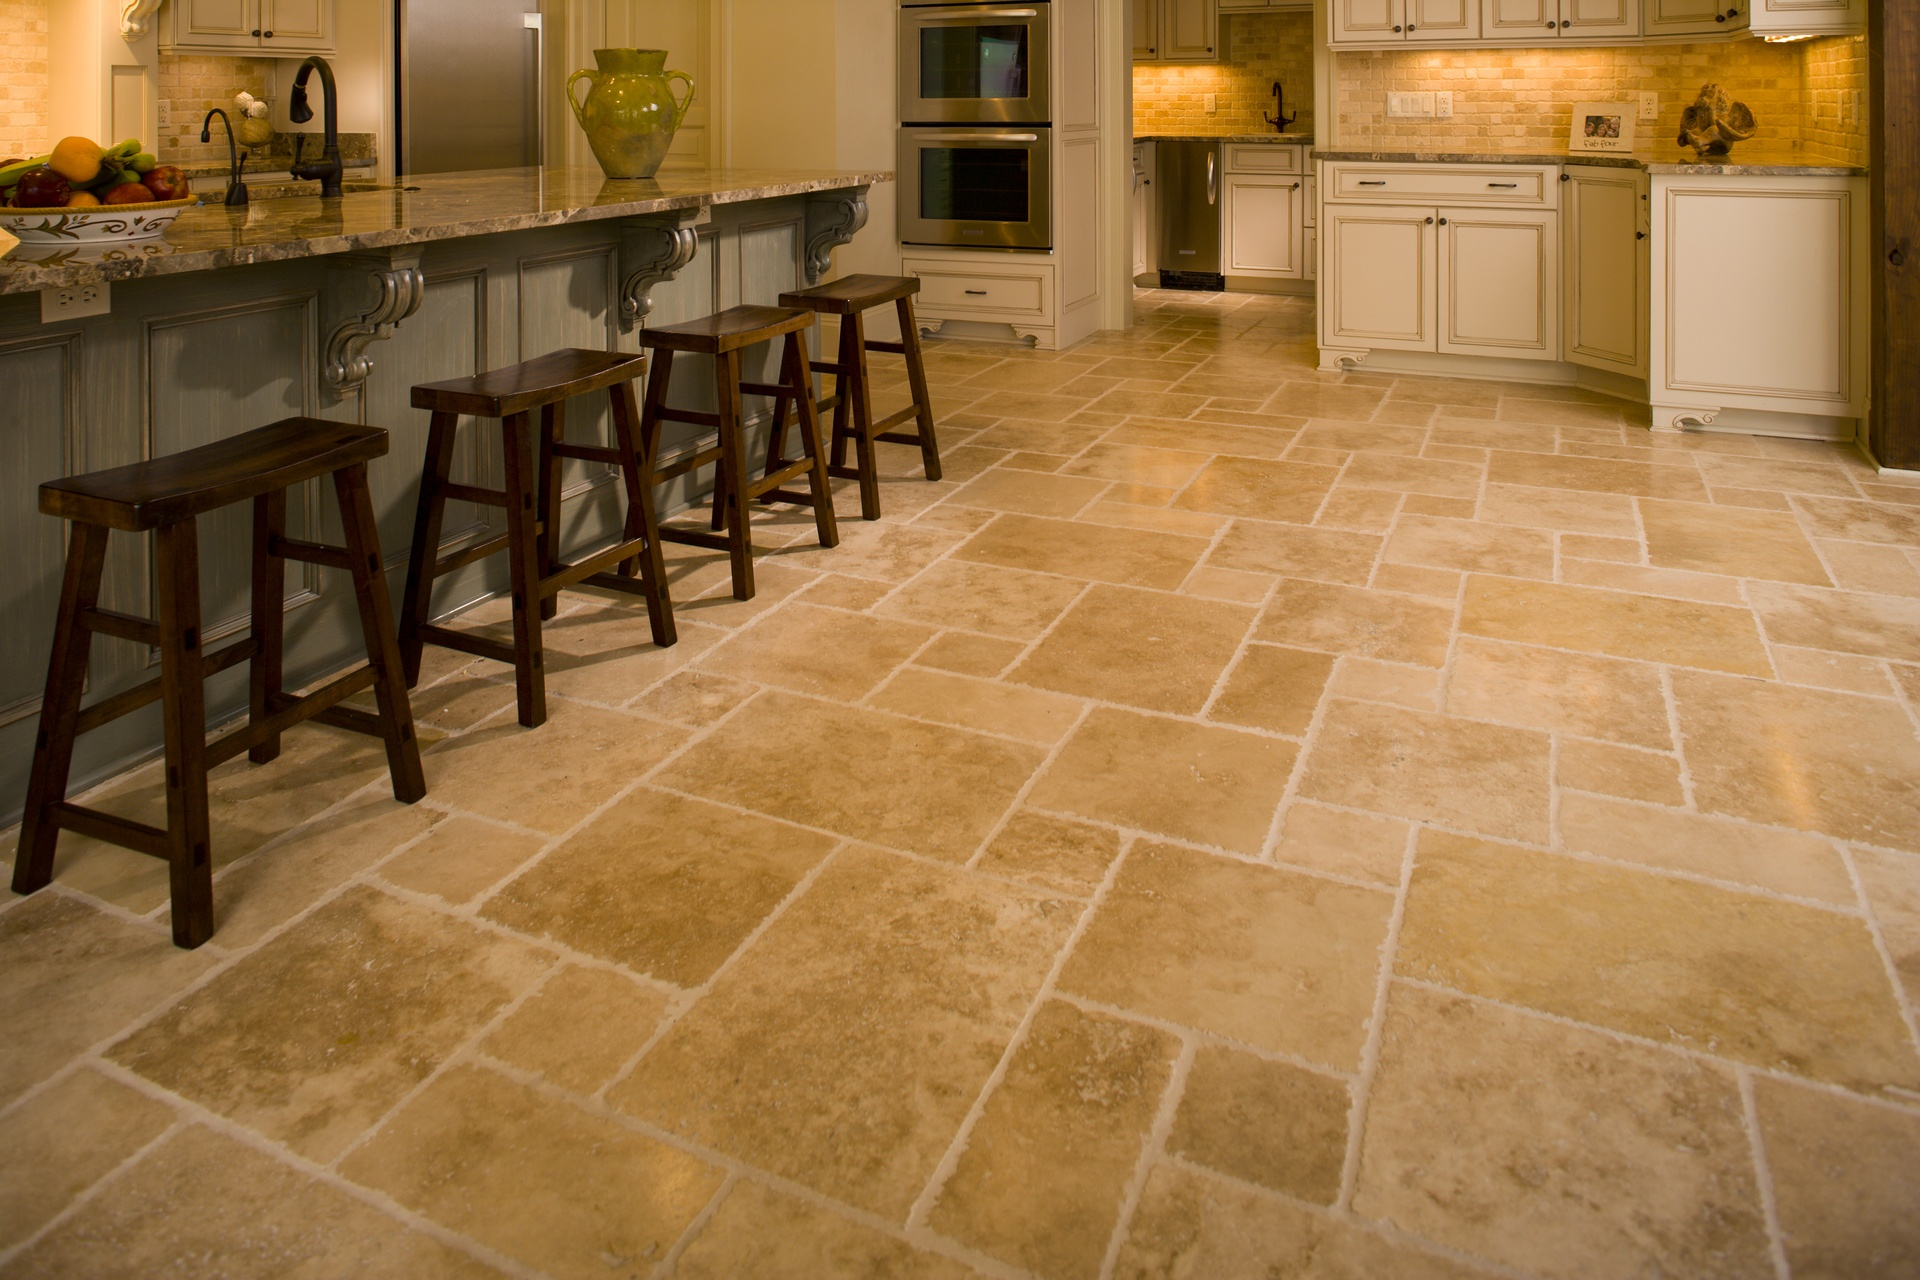 Kitchen Floor Stone Tiles Floor And Wall Tile Installation Panama City Beach Fl Seashore Tile